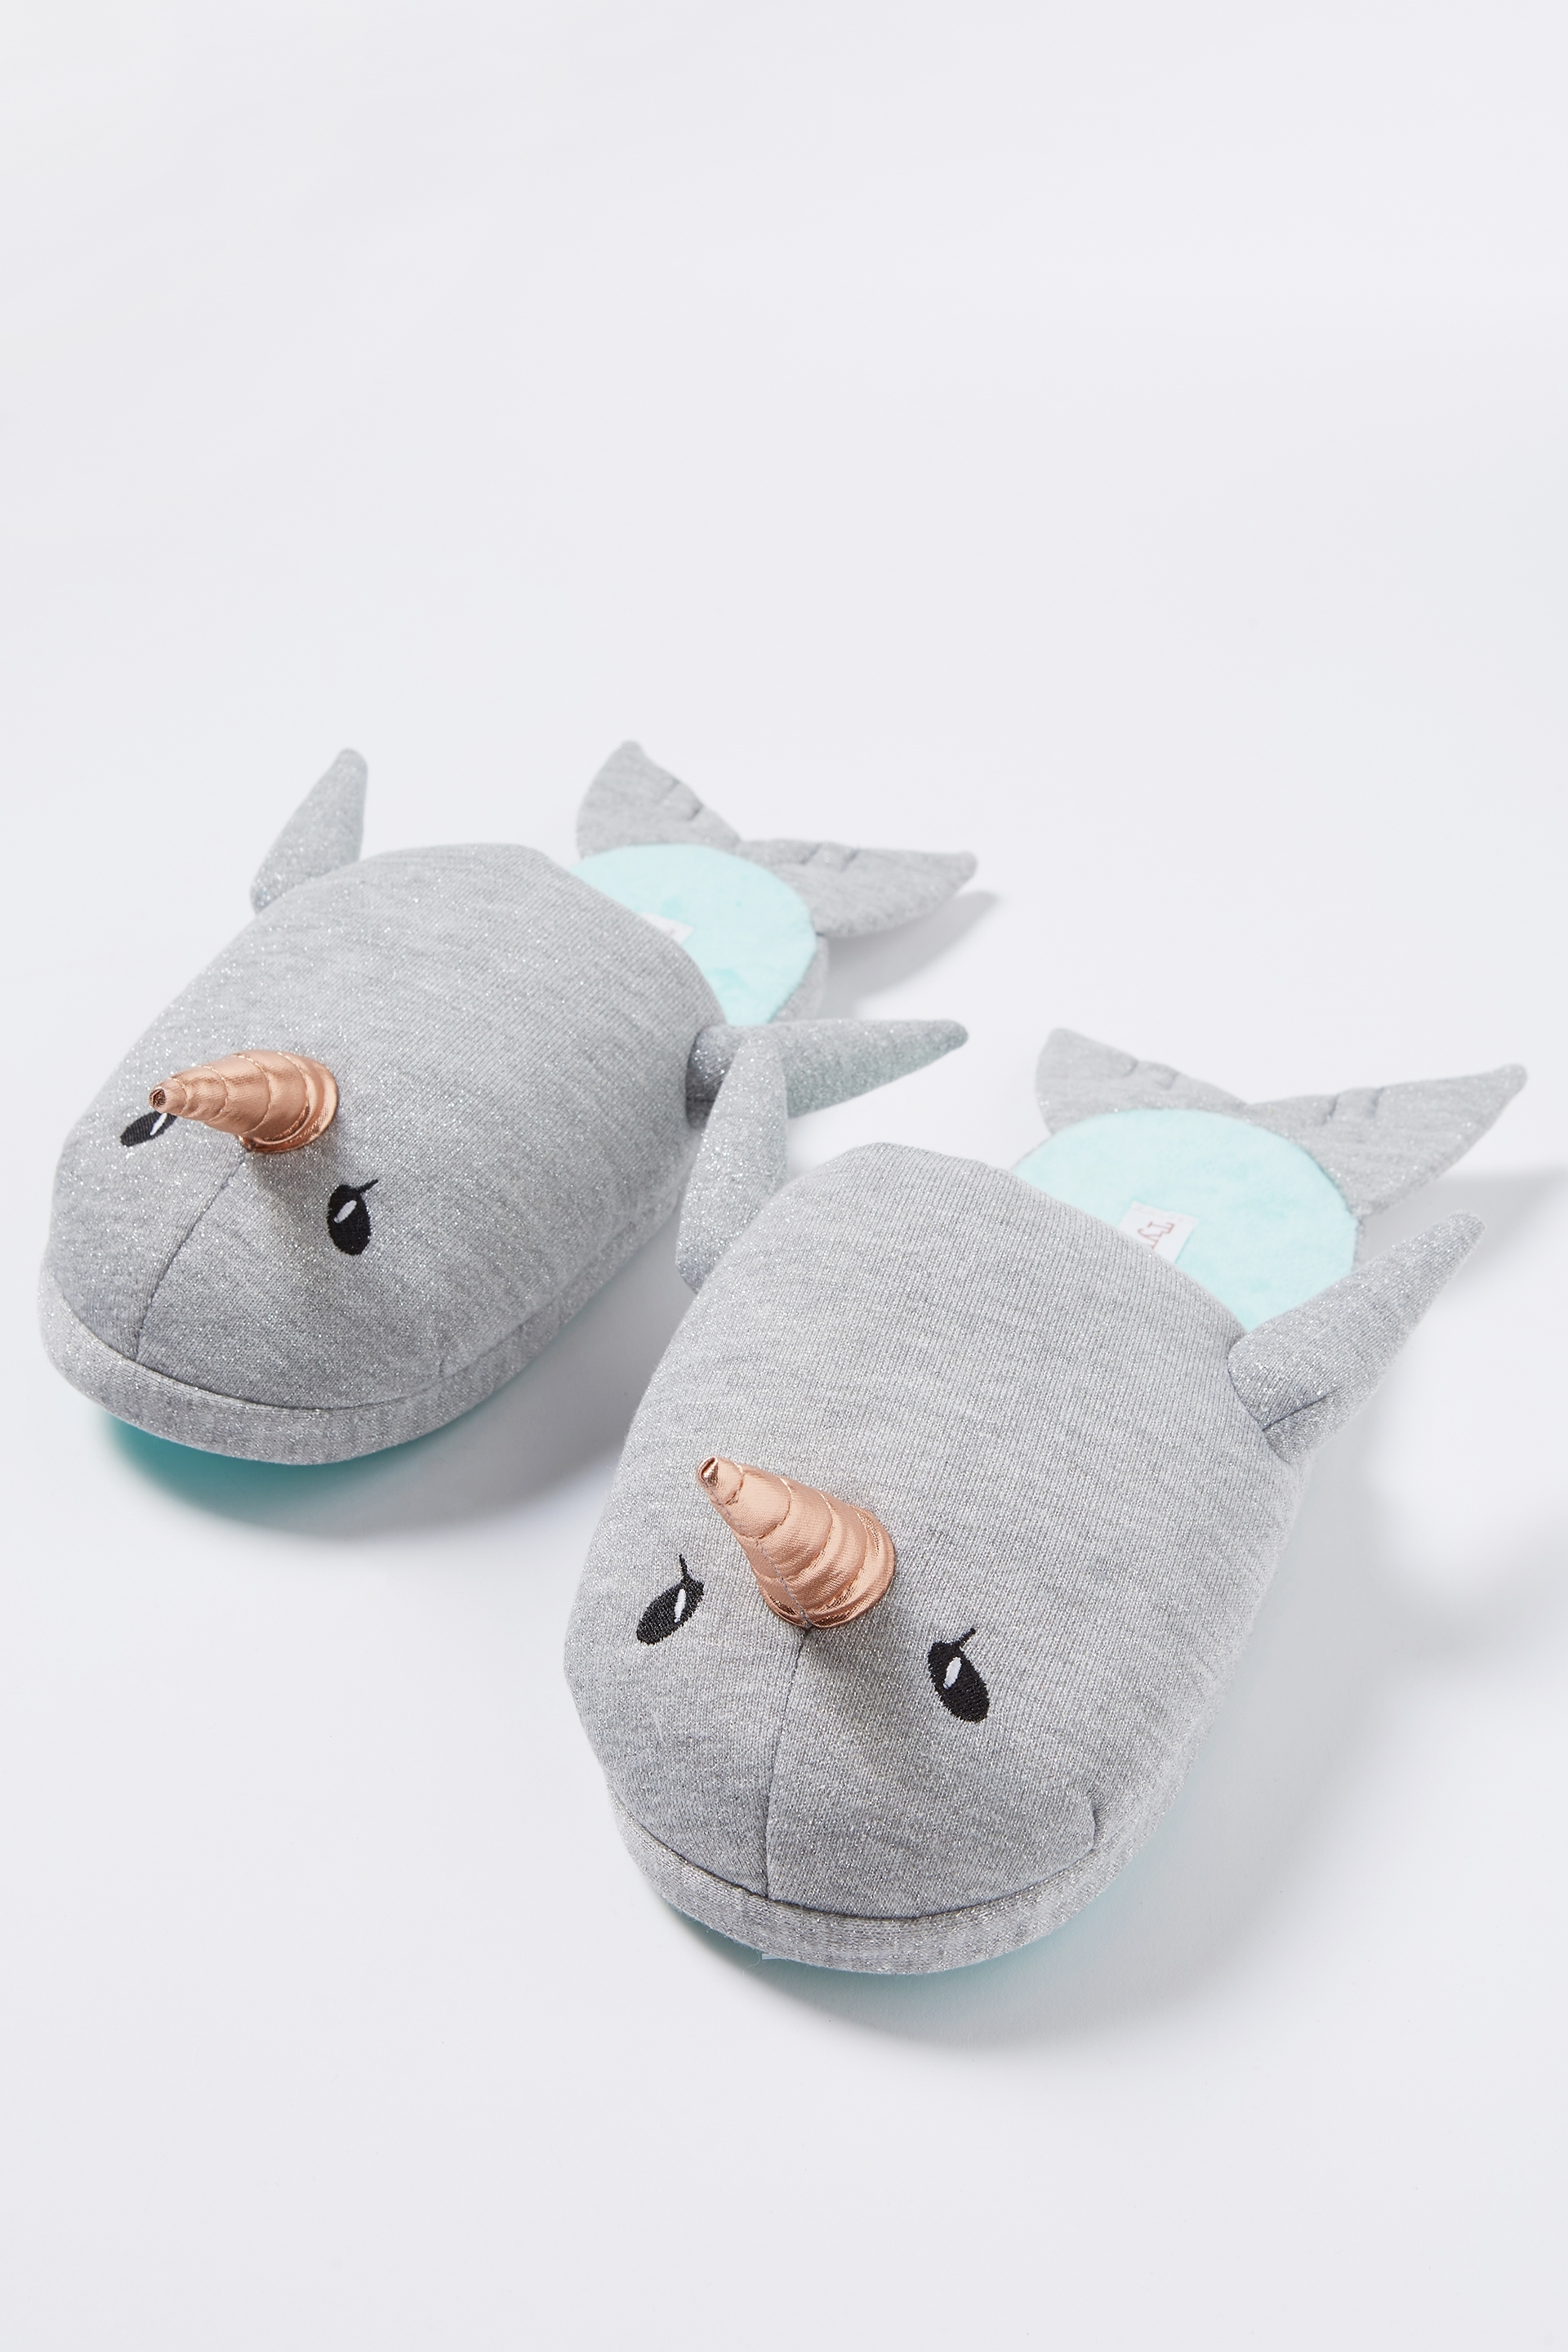 42fe70530f67 Typo - Novelty Slippers - Narwhal